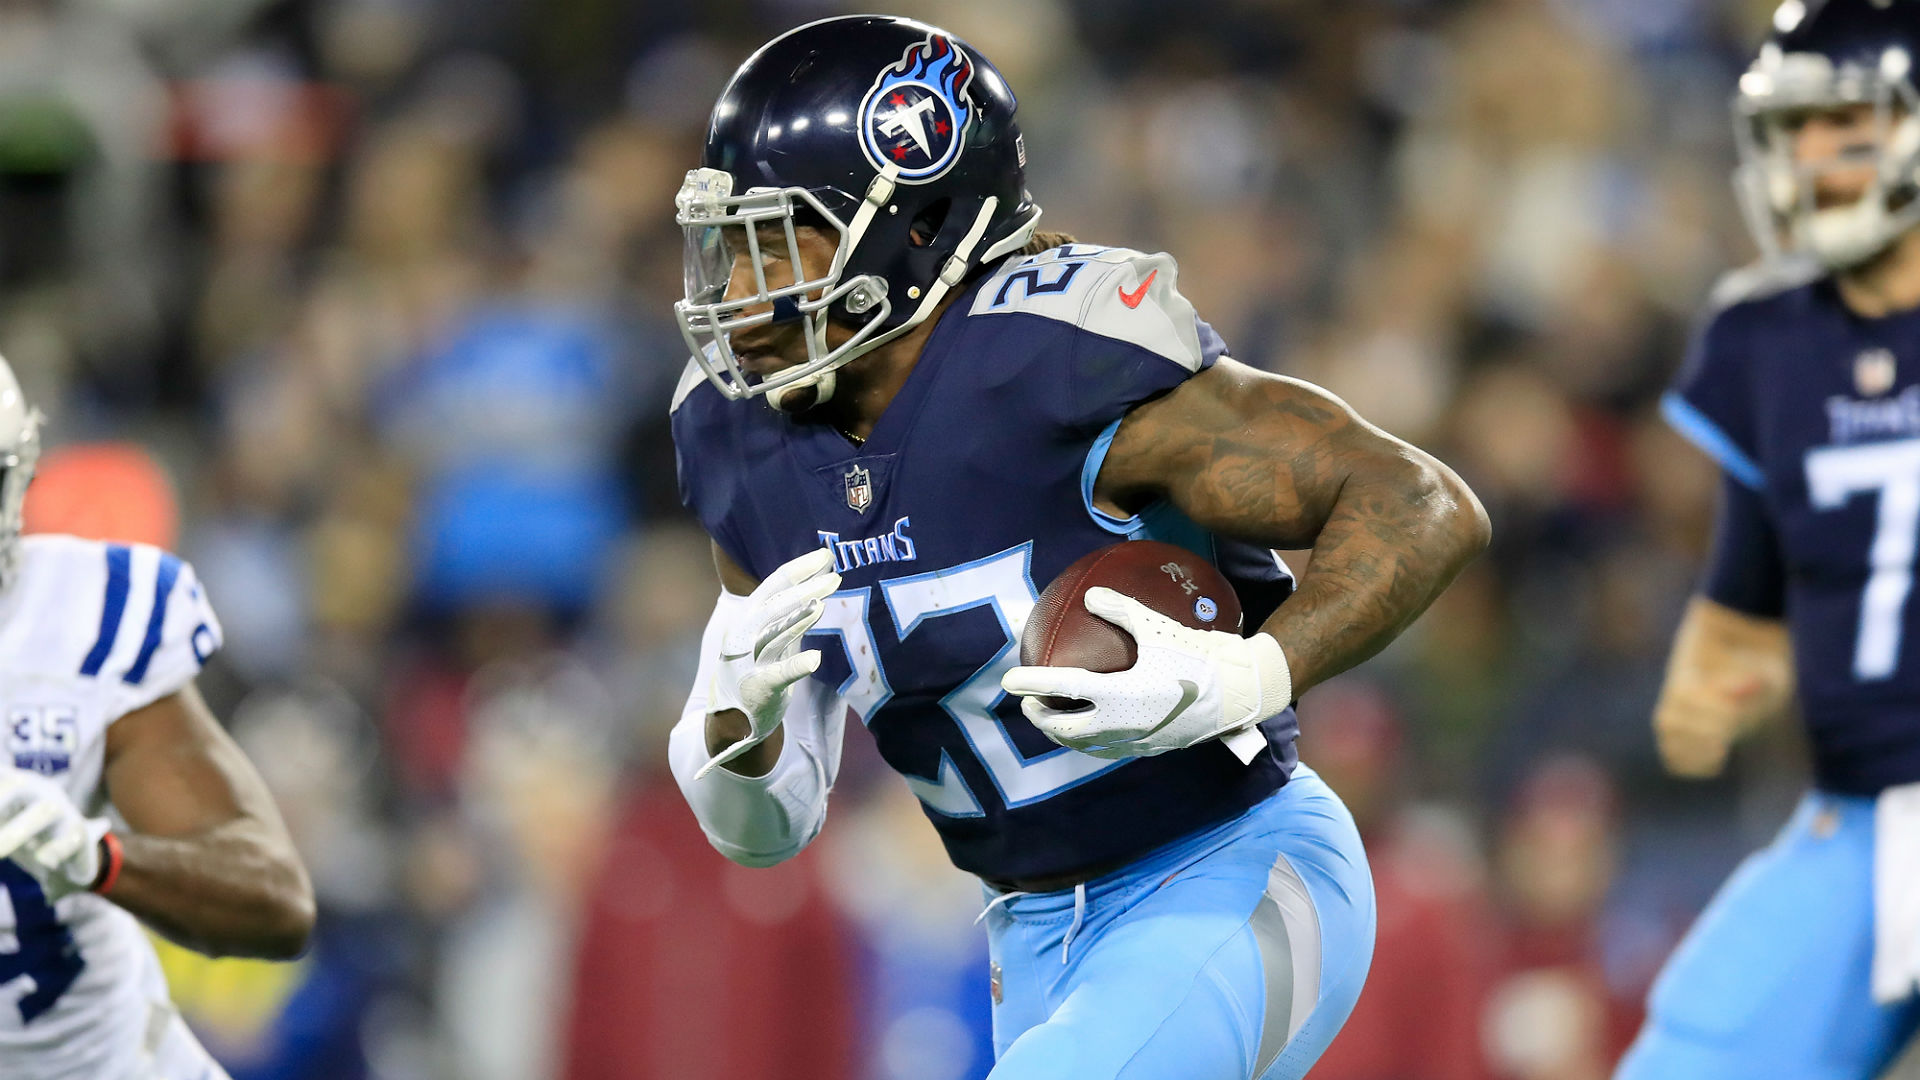 Derrick Henry injury update: Titans running back (calf) returns to practice after long absence